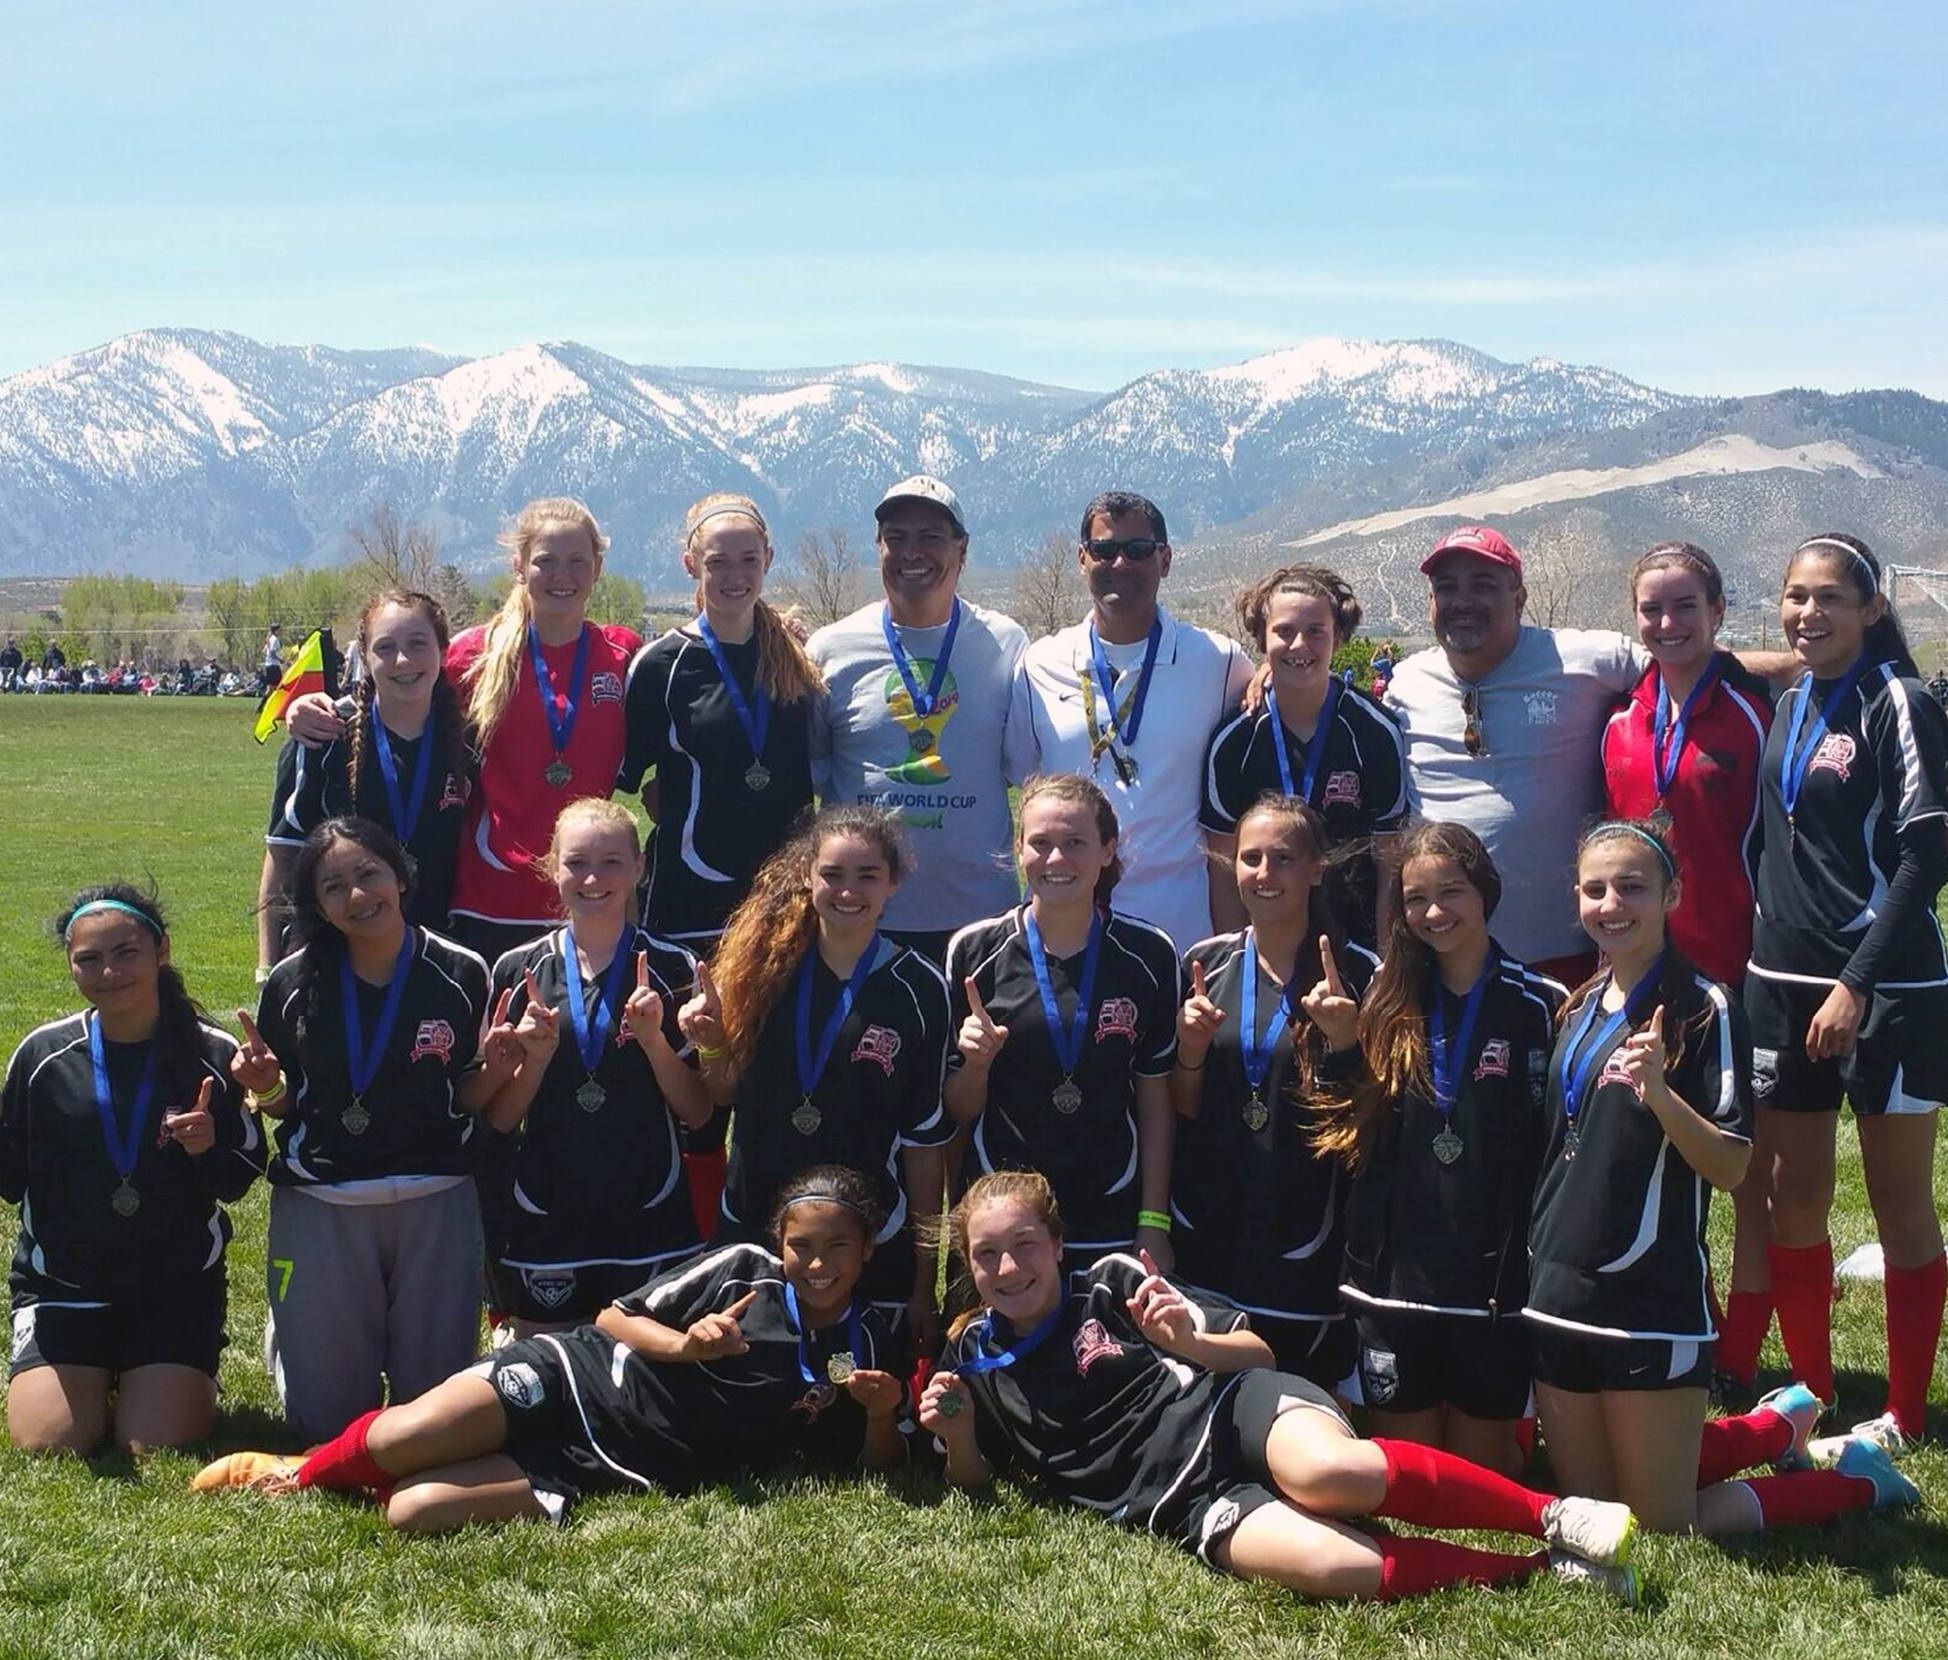 Comstock Shootout Champions - I love the Sierra Nevada mountain range in the background.